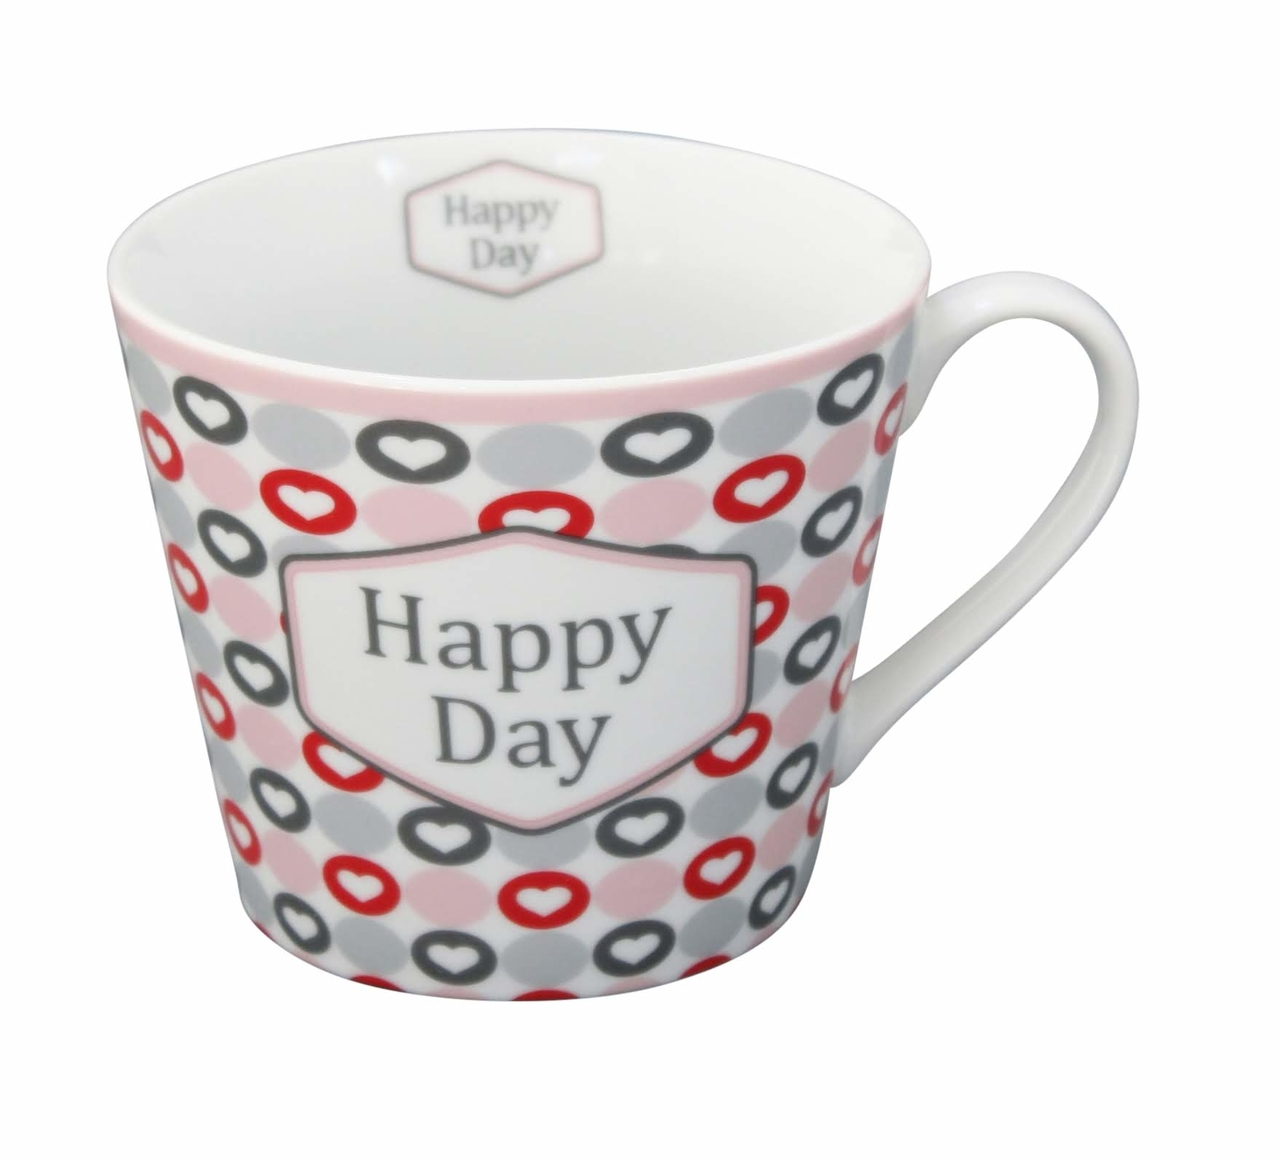 Krasilnikoff Tasse / Cup Happy Day